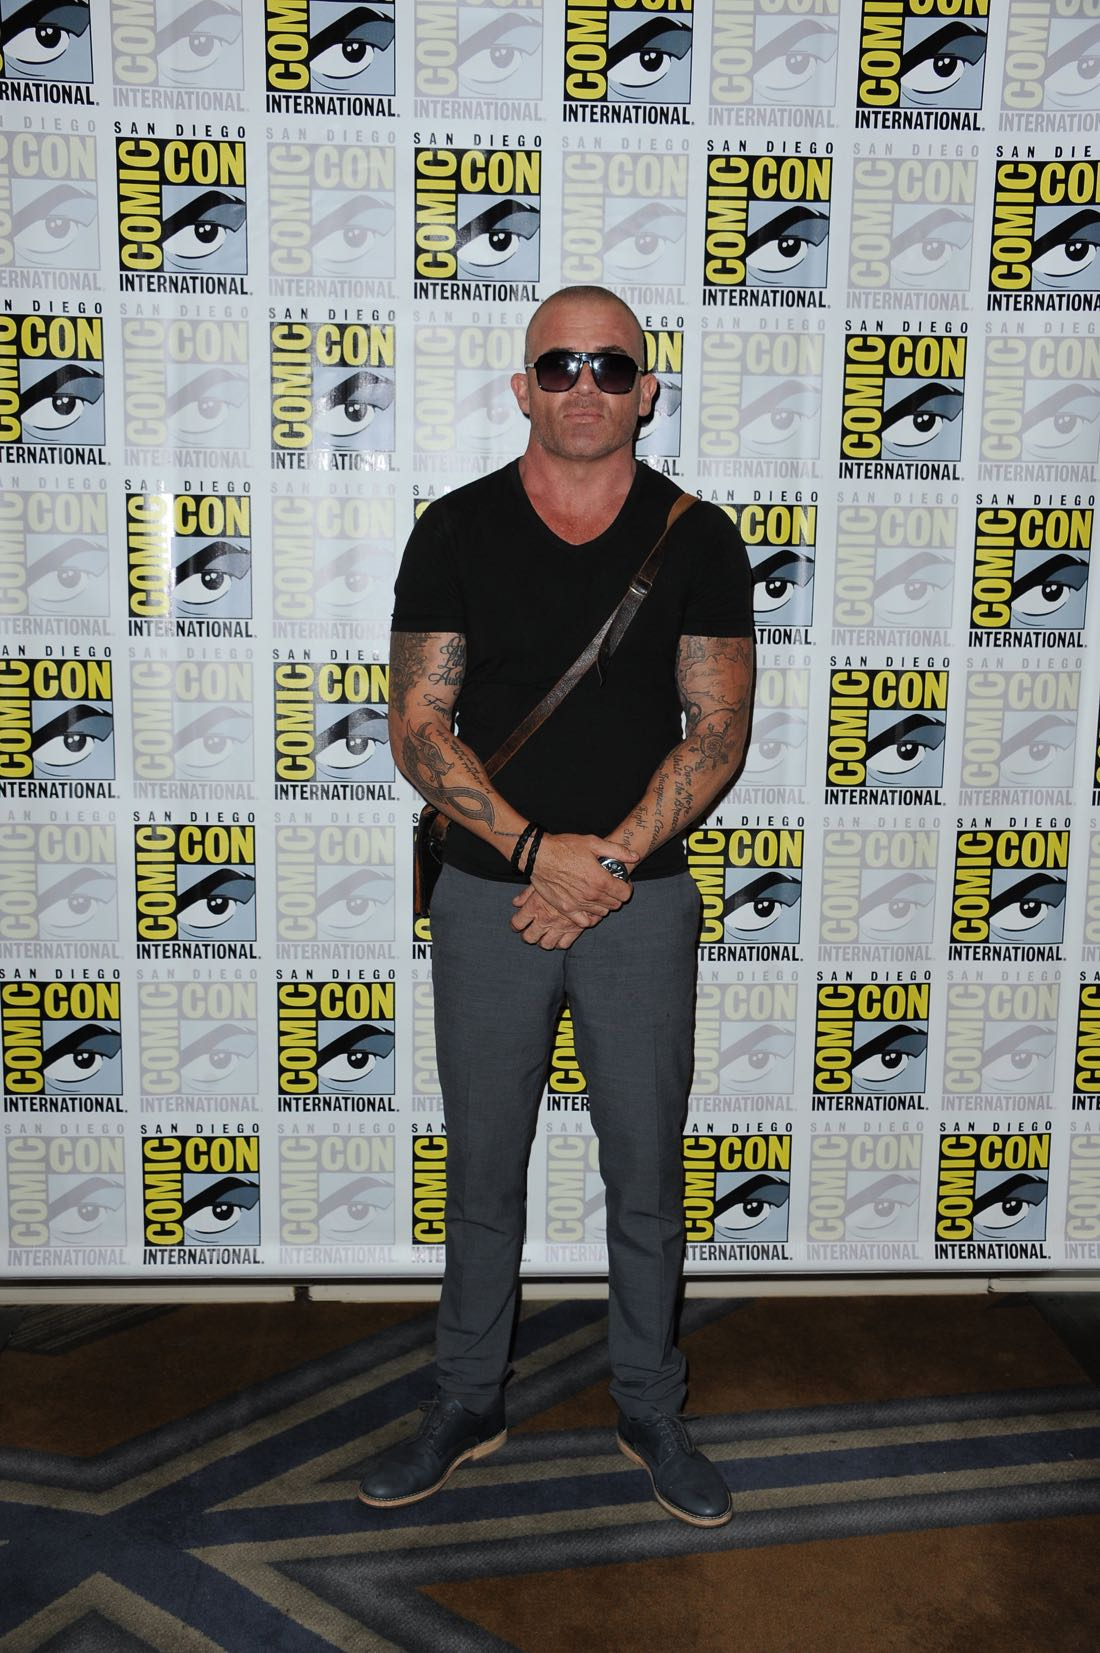 FOX FANFARE AT SAN DIEGO COMIC-CON © 2016: PRISON BREAK cast member Dominic Purcell during the PRISON BREAK press room on Sunday, July 24 at the FOX FANFARE AT SAN DIEGO COMIC-CON © 2016. CR: Scott Kirkland/FOX © 2016 FOX BROADCASTING